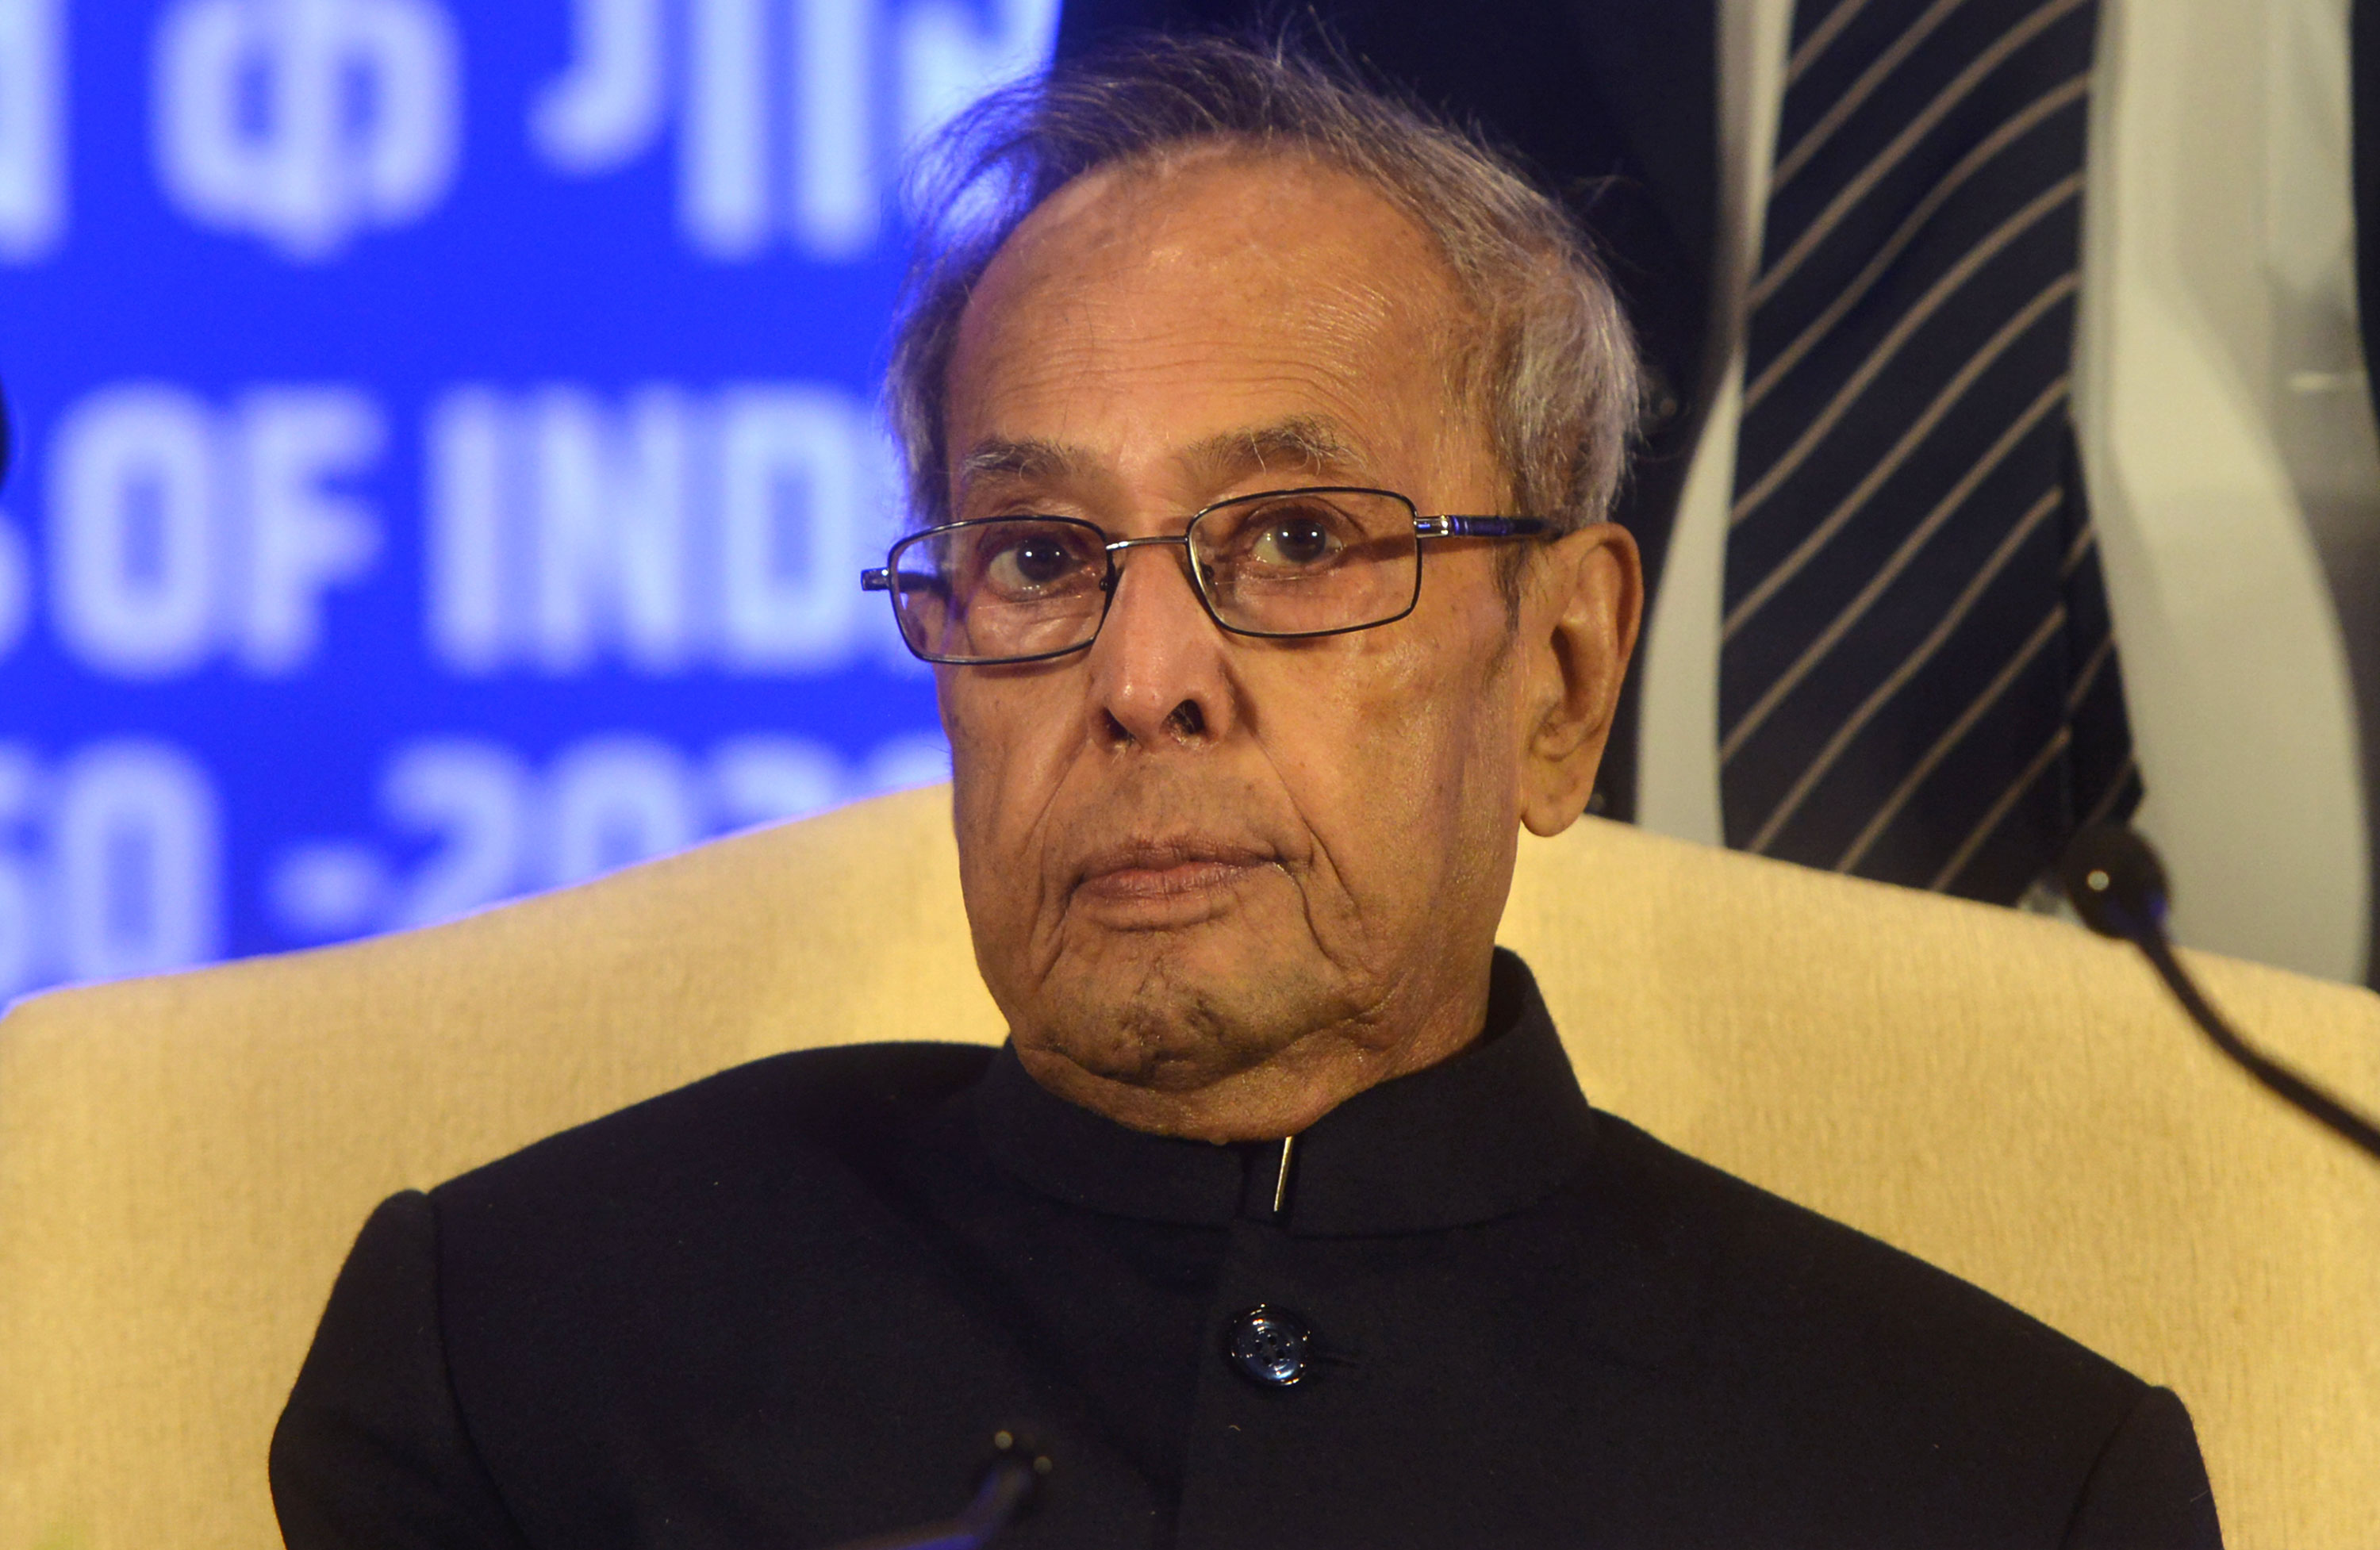 Former President of India, Pranab Mukherjee, attends the Sukumar Sen Memorial Lecture Series in New Delhi, India, on January 23.